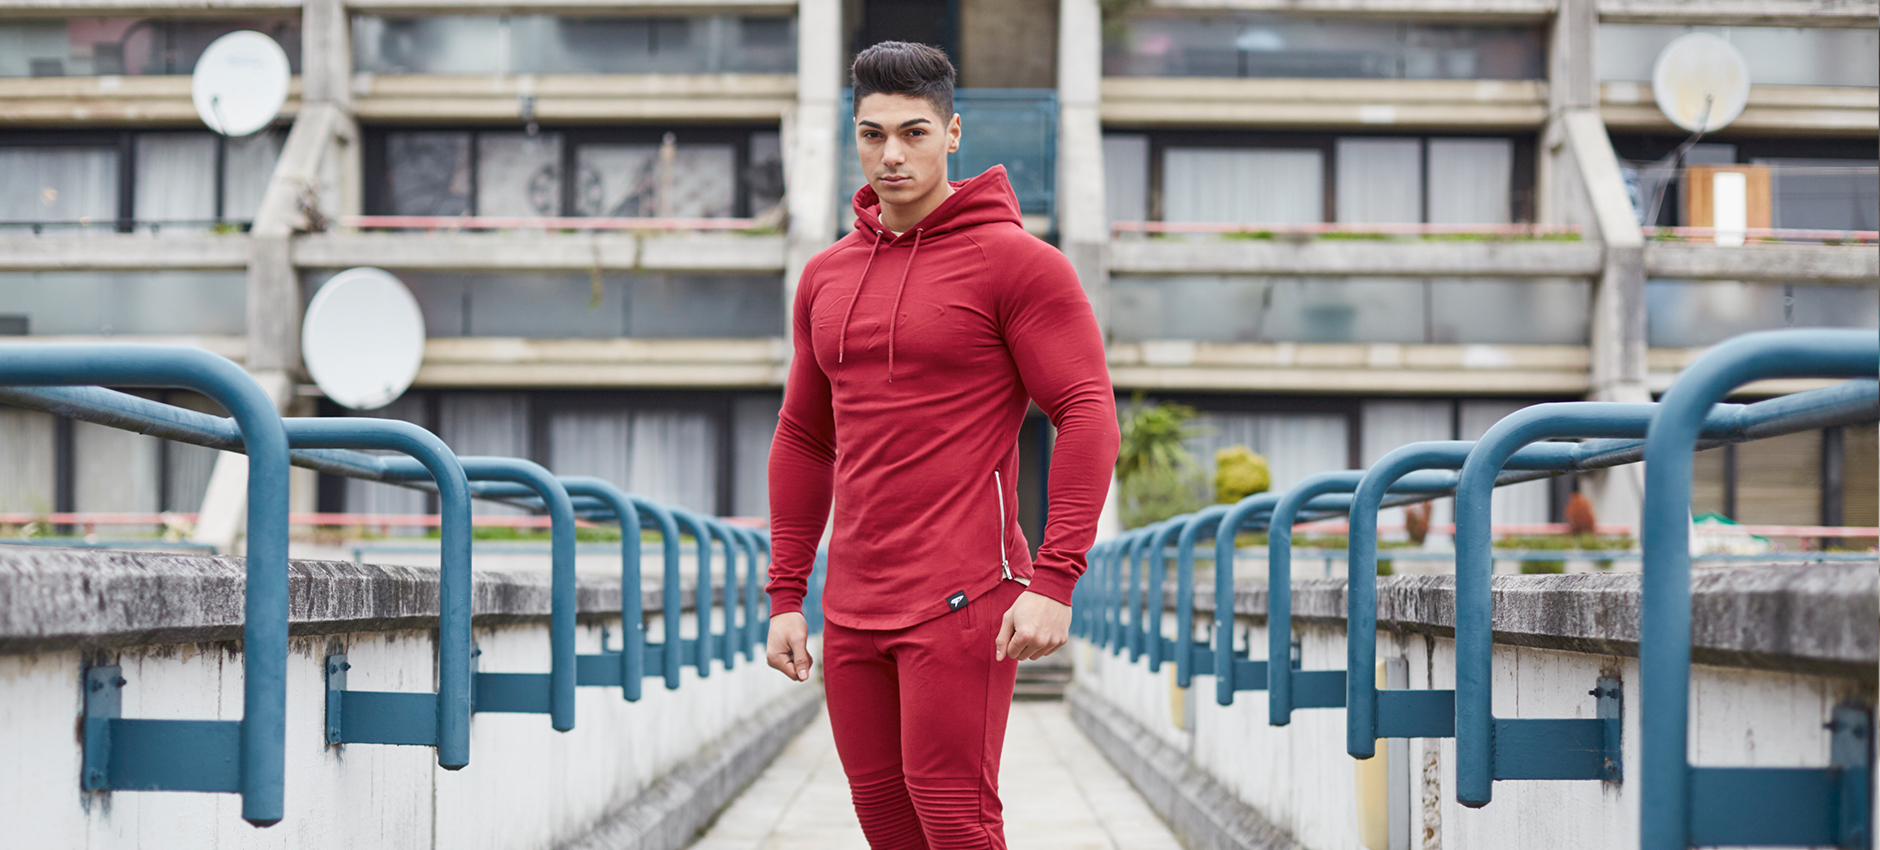 Gym, Sports and Lifestyle Clothing | Physiq Apparel